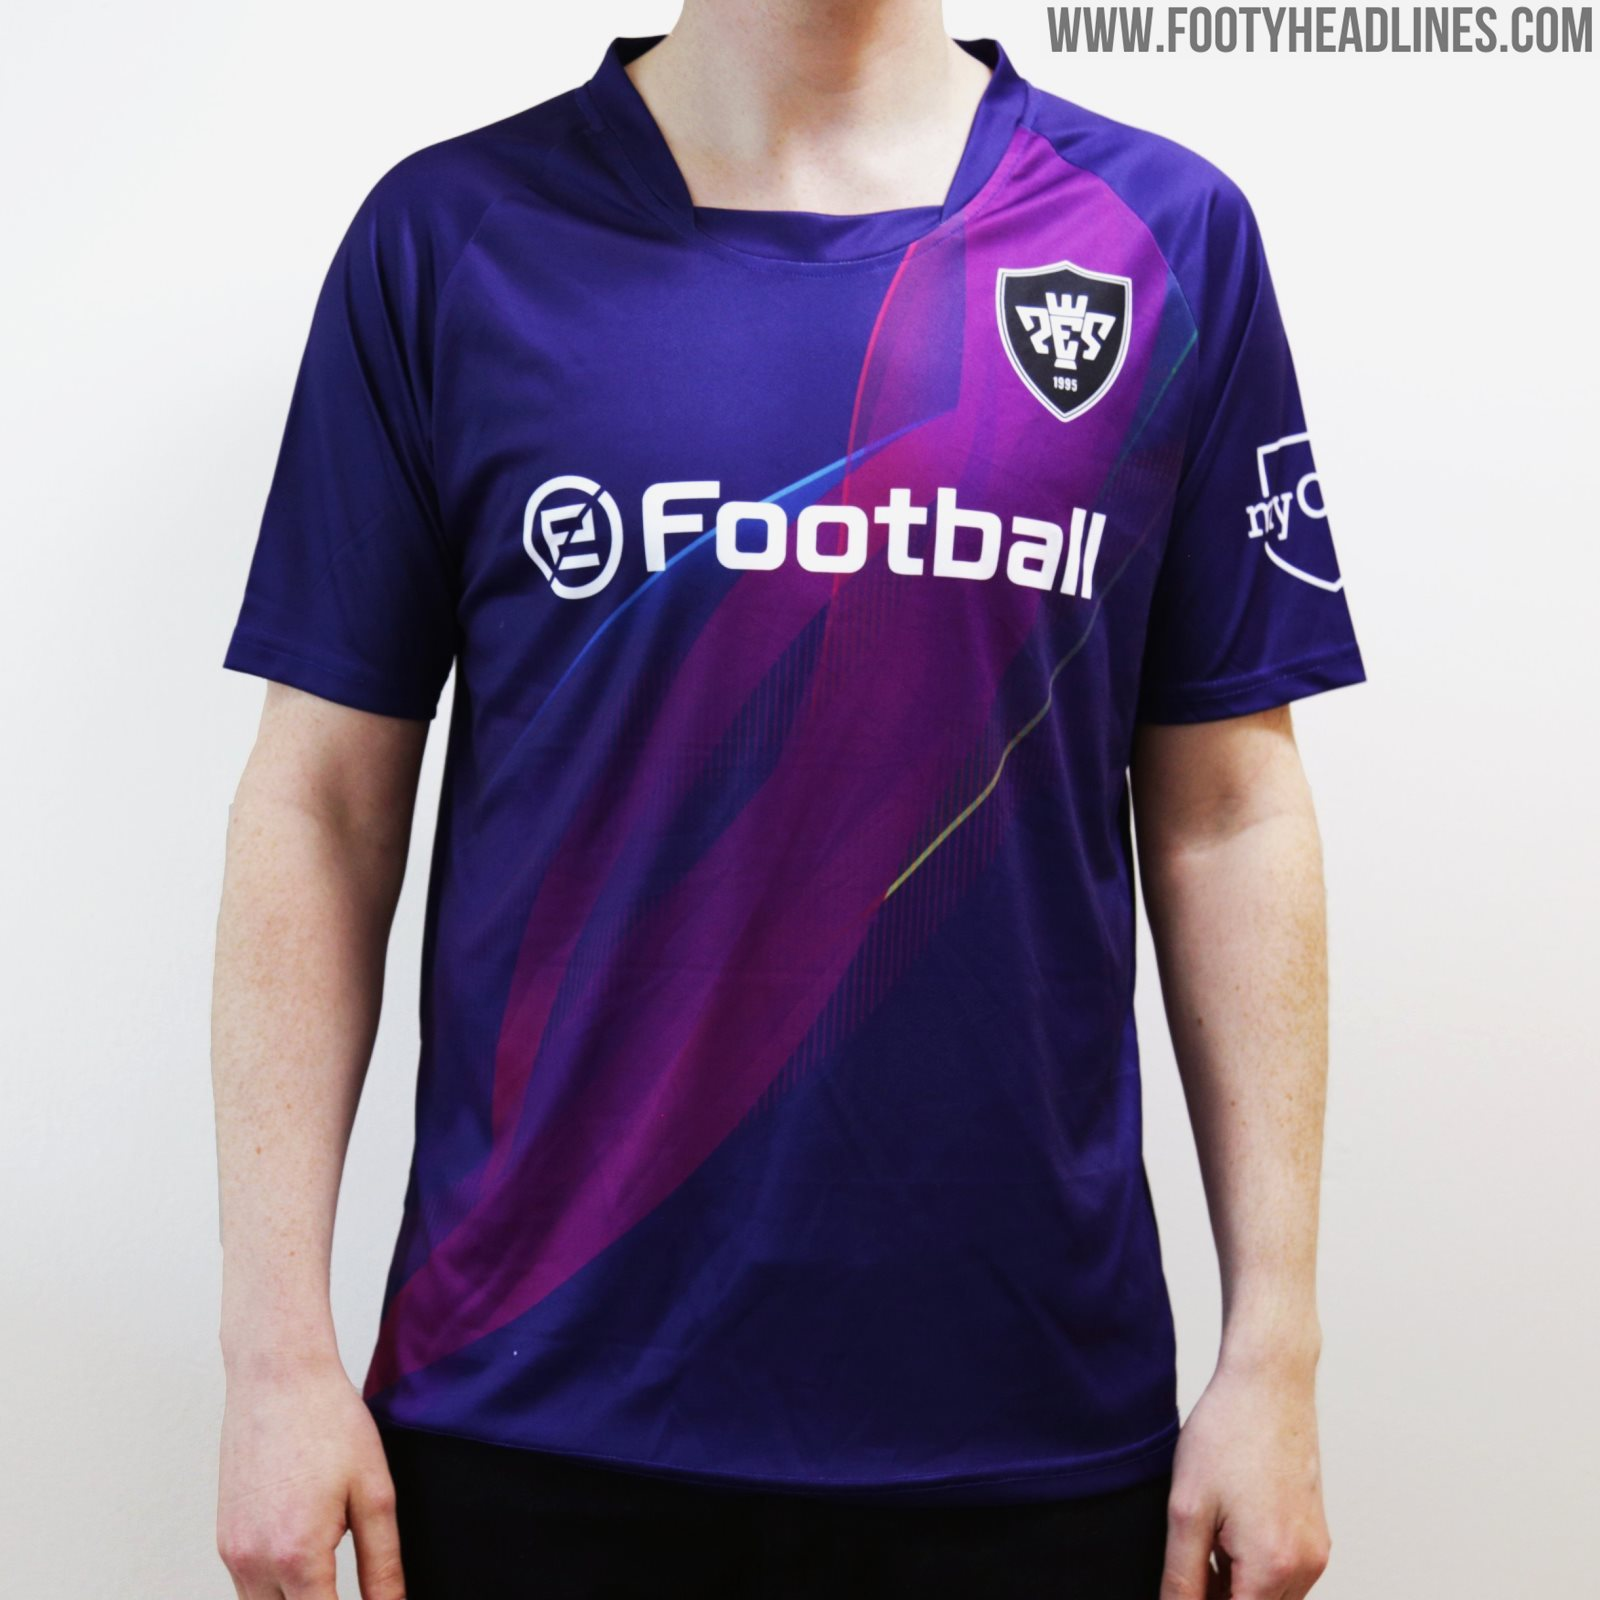 PES 2020 Football Kit Released - Free With Game Purchase on